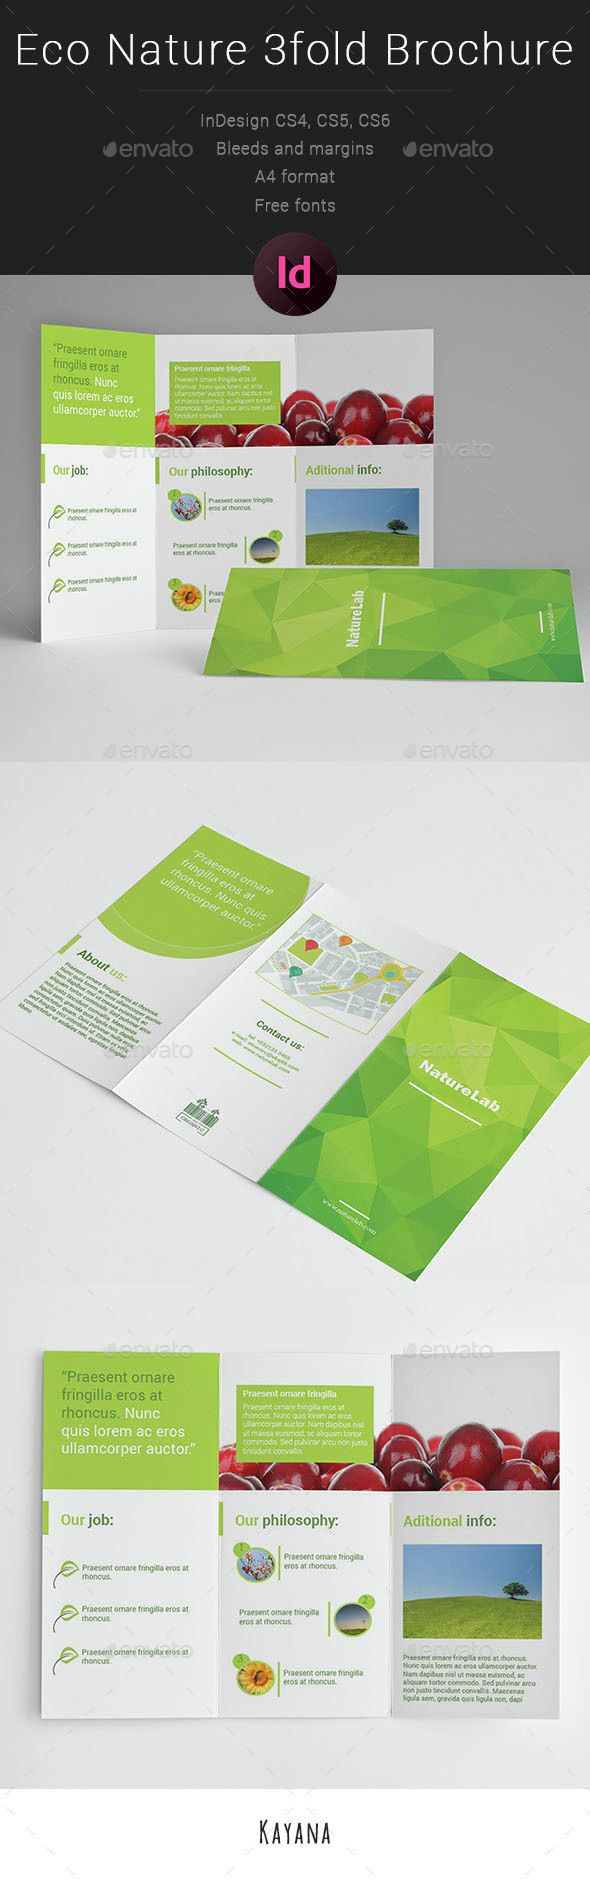 Eco Nature 3fold Brochure Template InDesign INDD #design Download: http://graphicriver.net/item/eco-nature-3fold-brochure/14550104?ref=ksioks